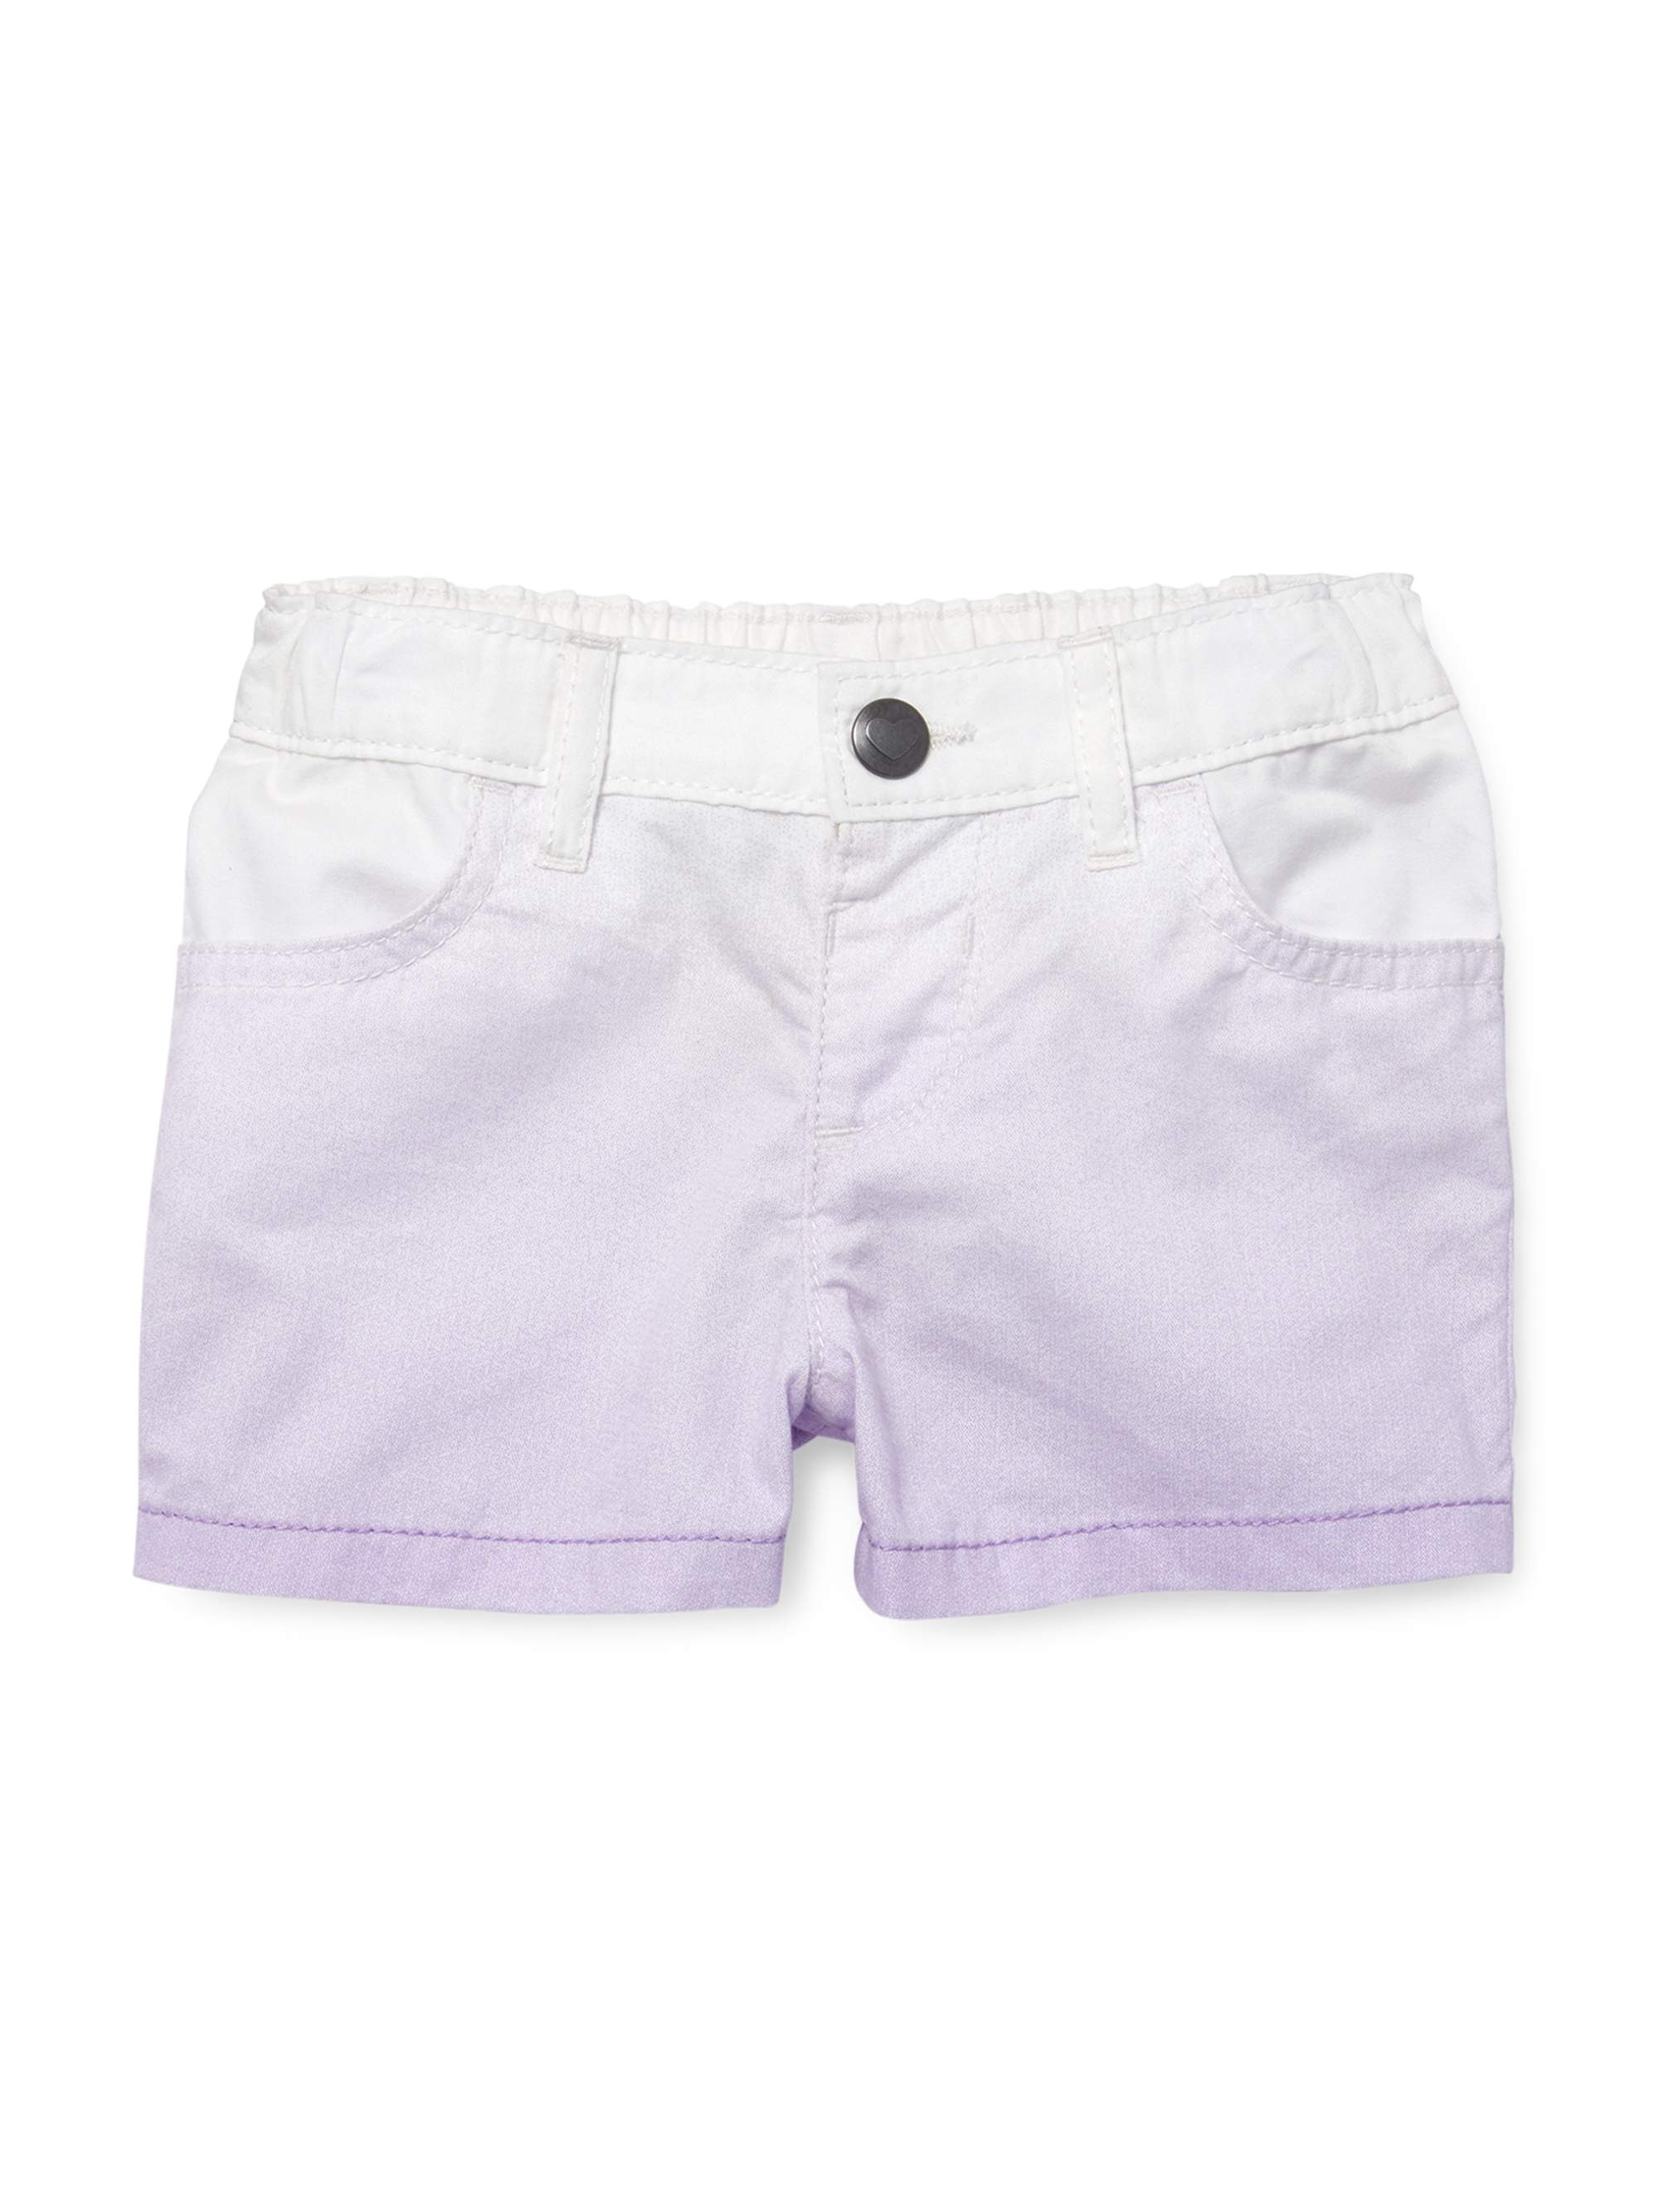 Children's Place Toddler Girls' Twill Shorts